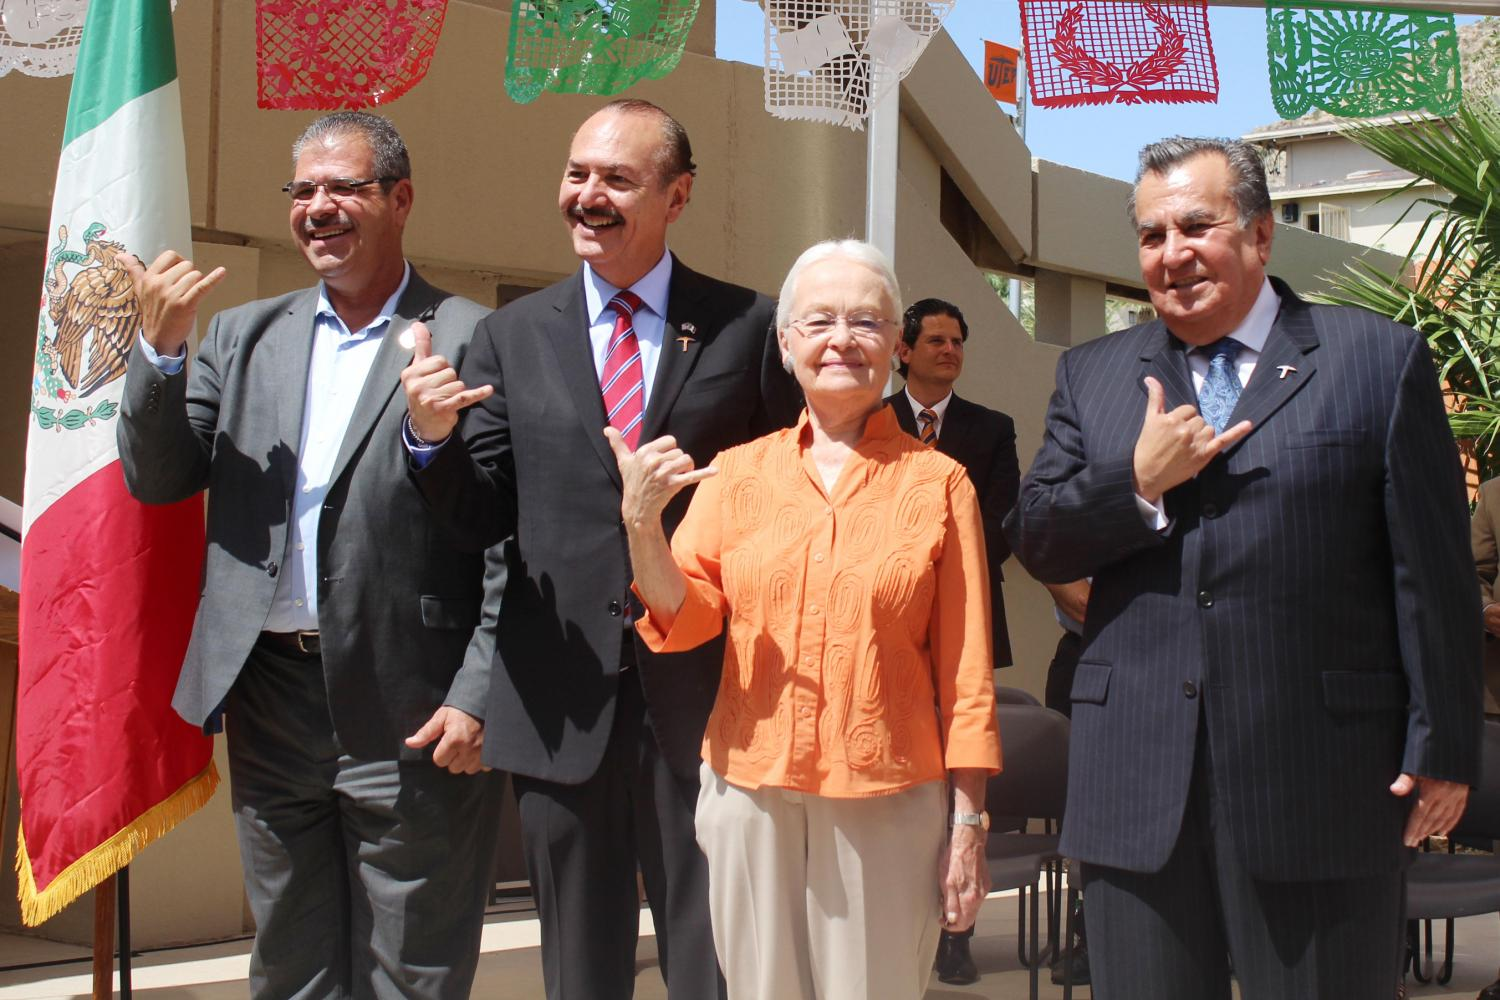 UTEP+holds+annual+%27El+Grito%27+ceremony